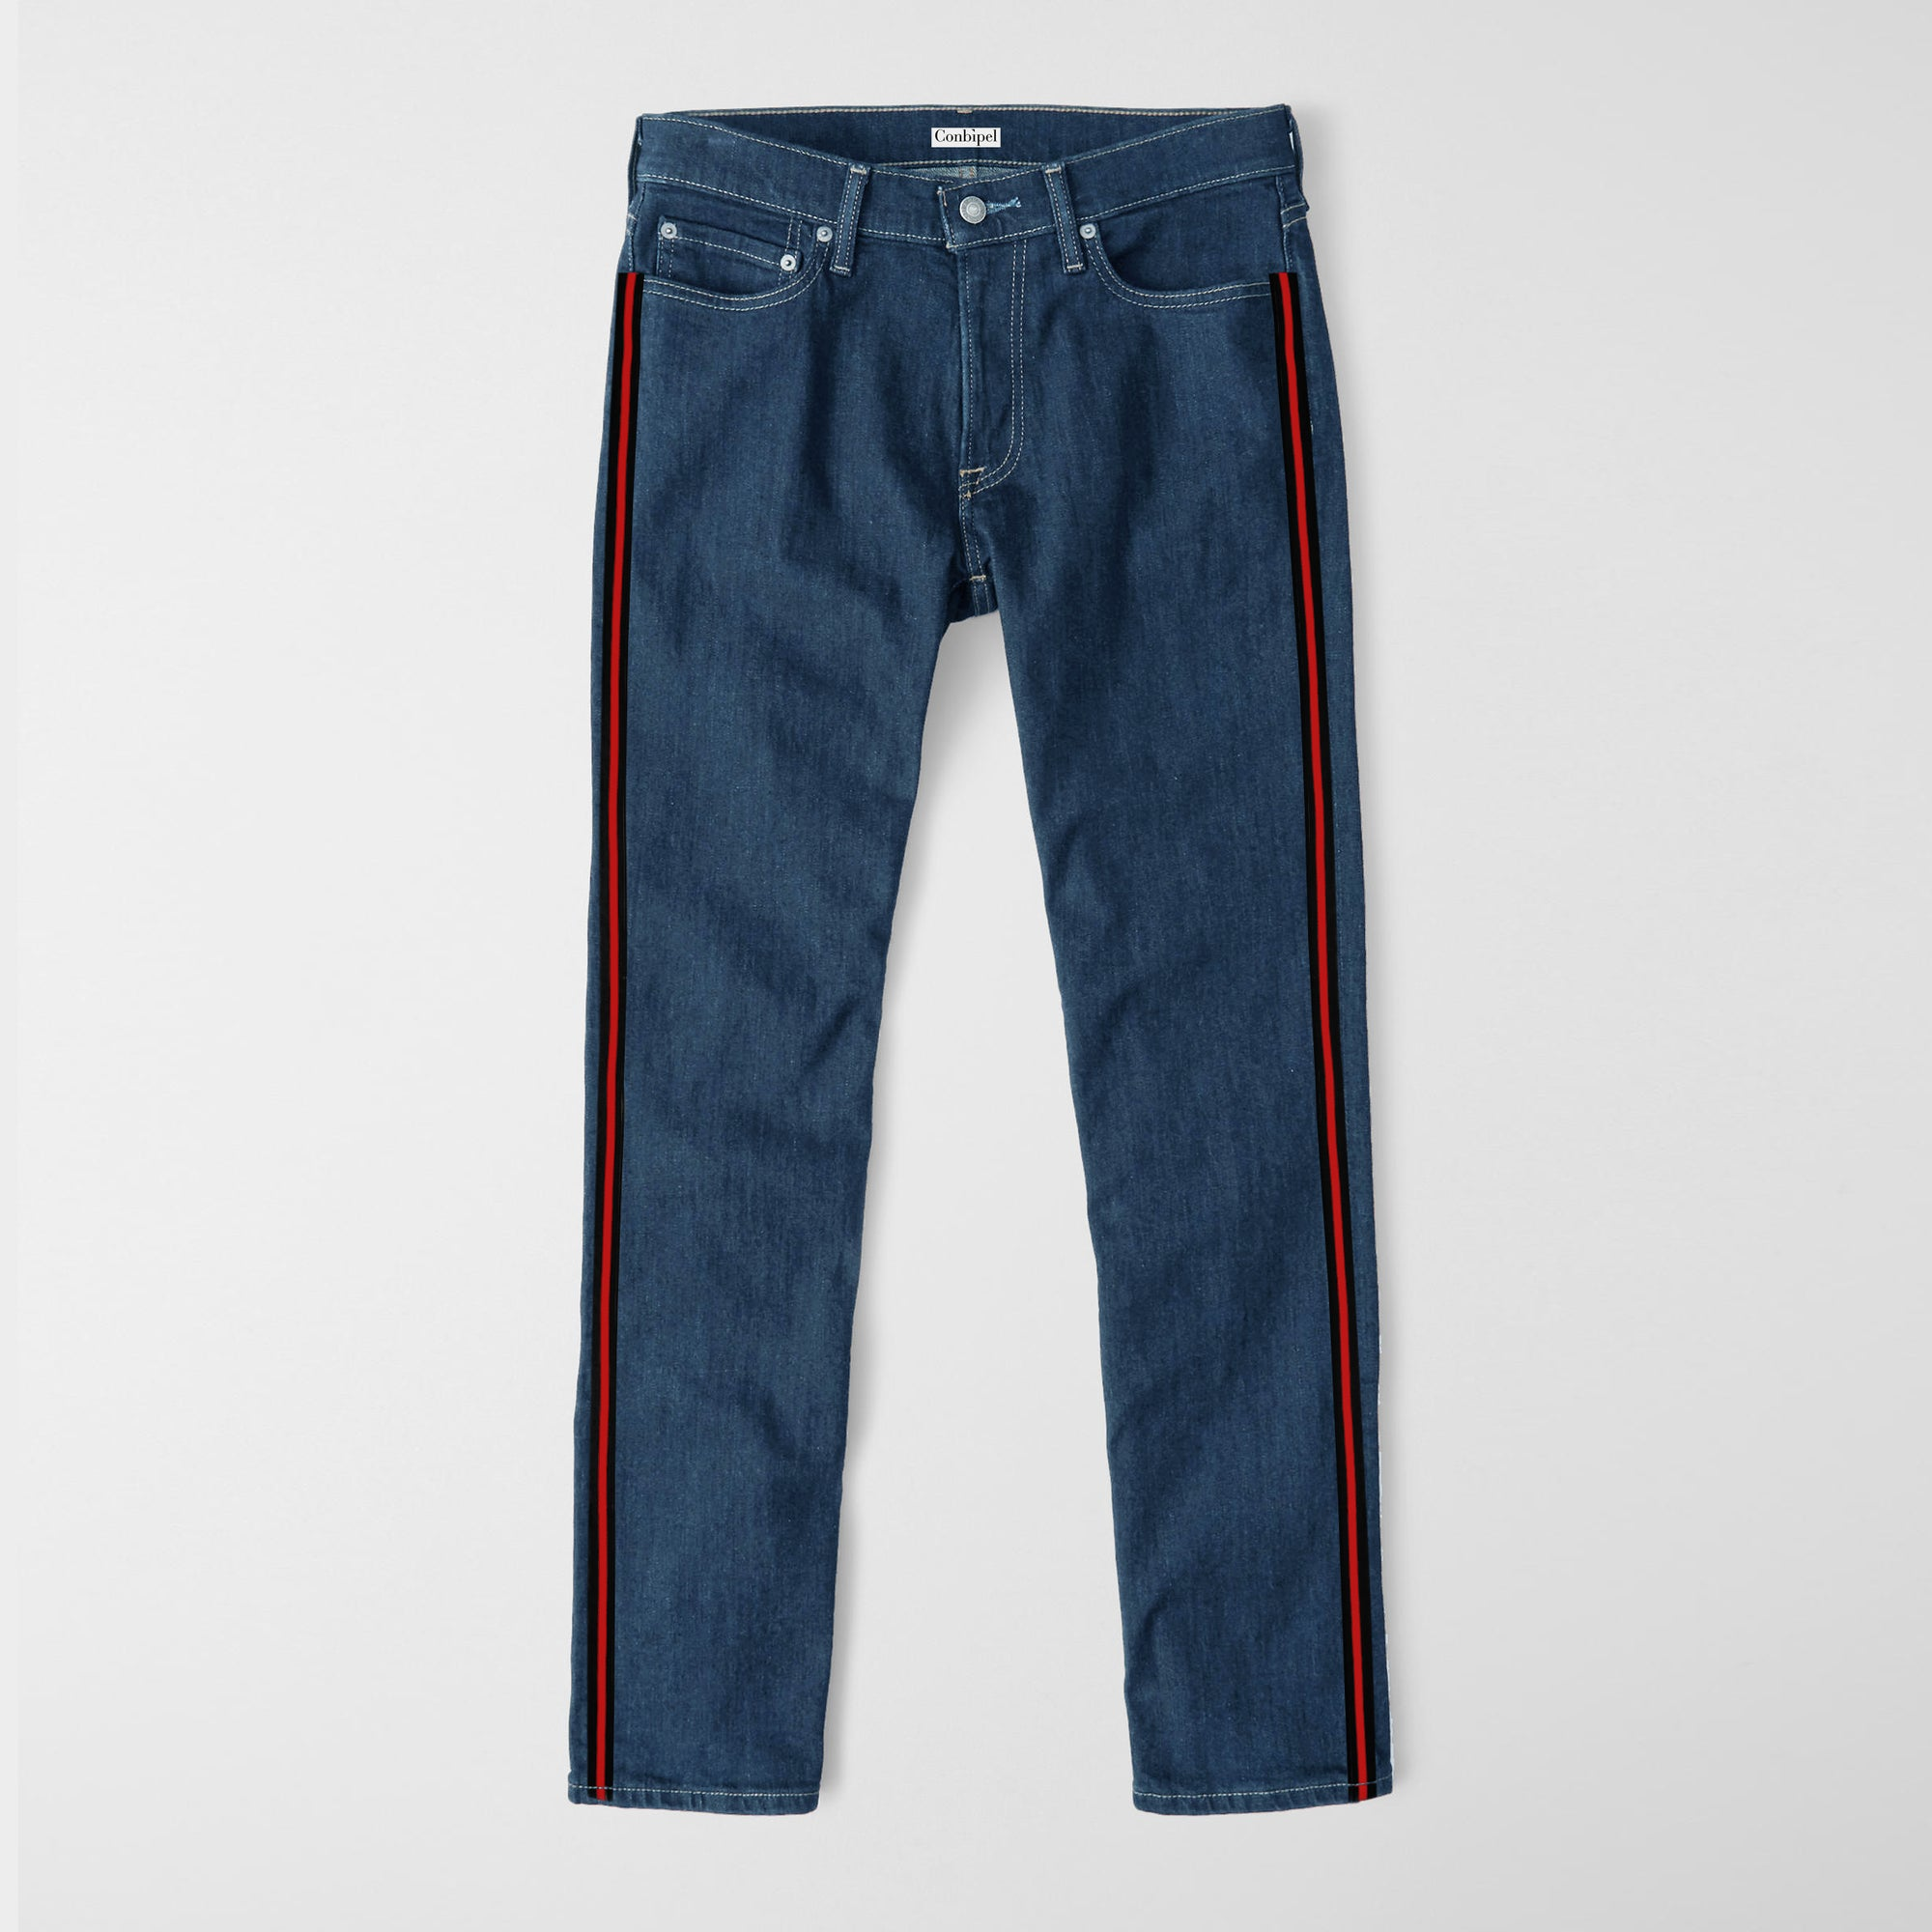 Hero Slim Fit Non Stretch Side Stripe Denim For Men-(S10)-Blue-NA9402